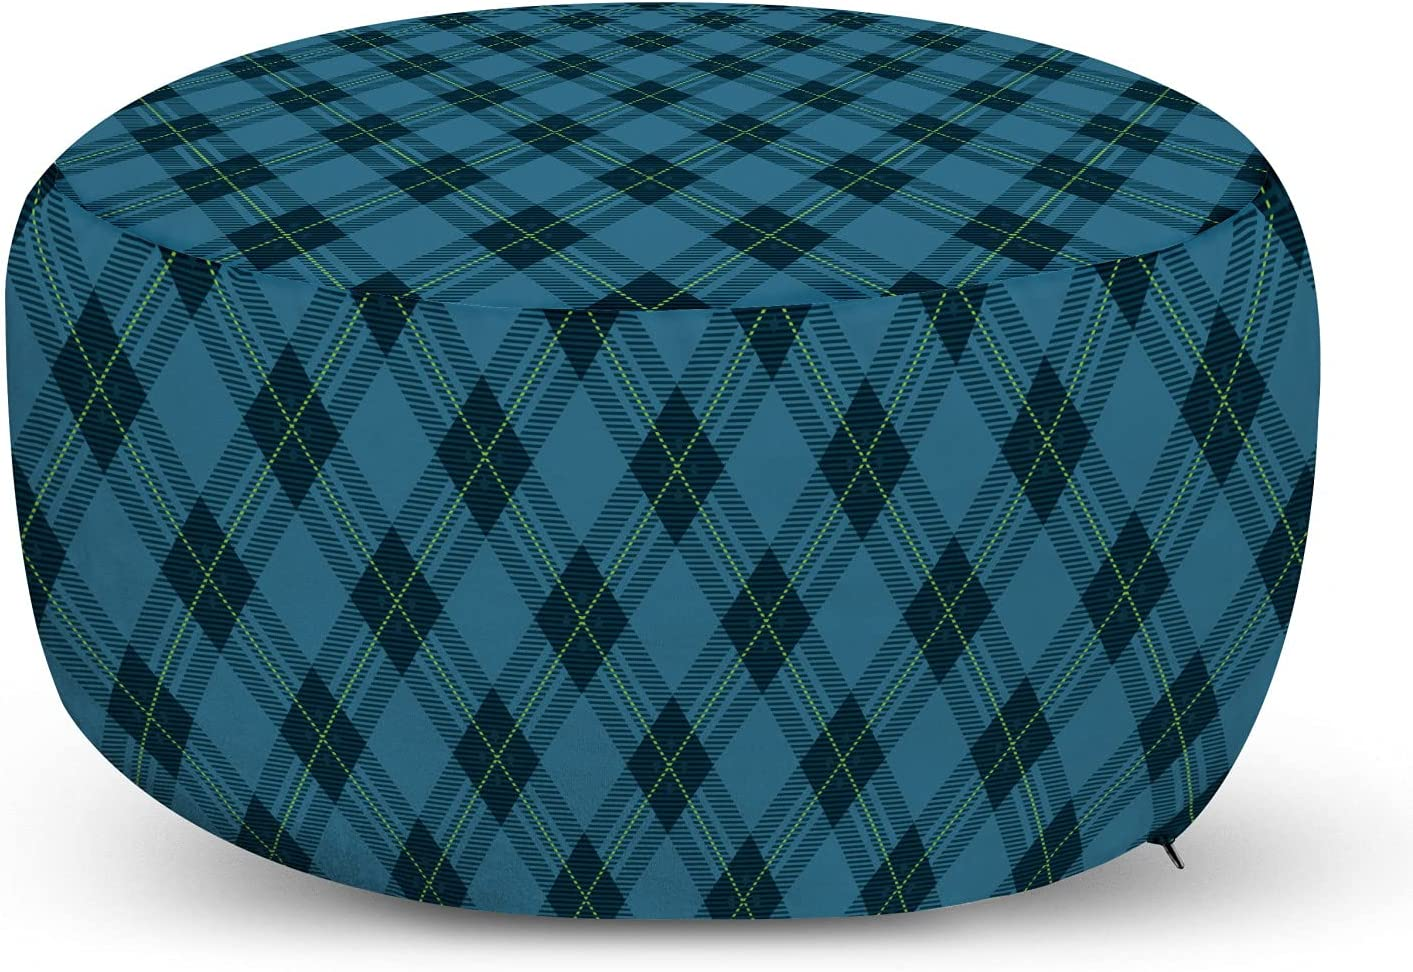 Lunarable Fees free New products, world's highest quality popular! Checkered Blue Ottoman Geometric Continous Patte Pouf